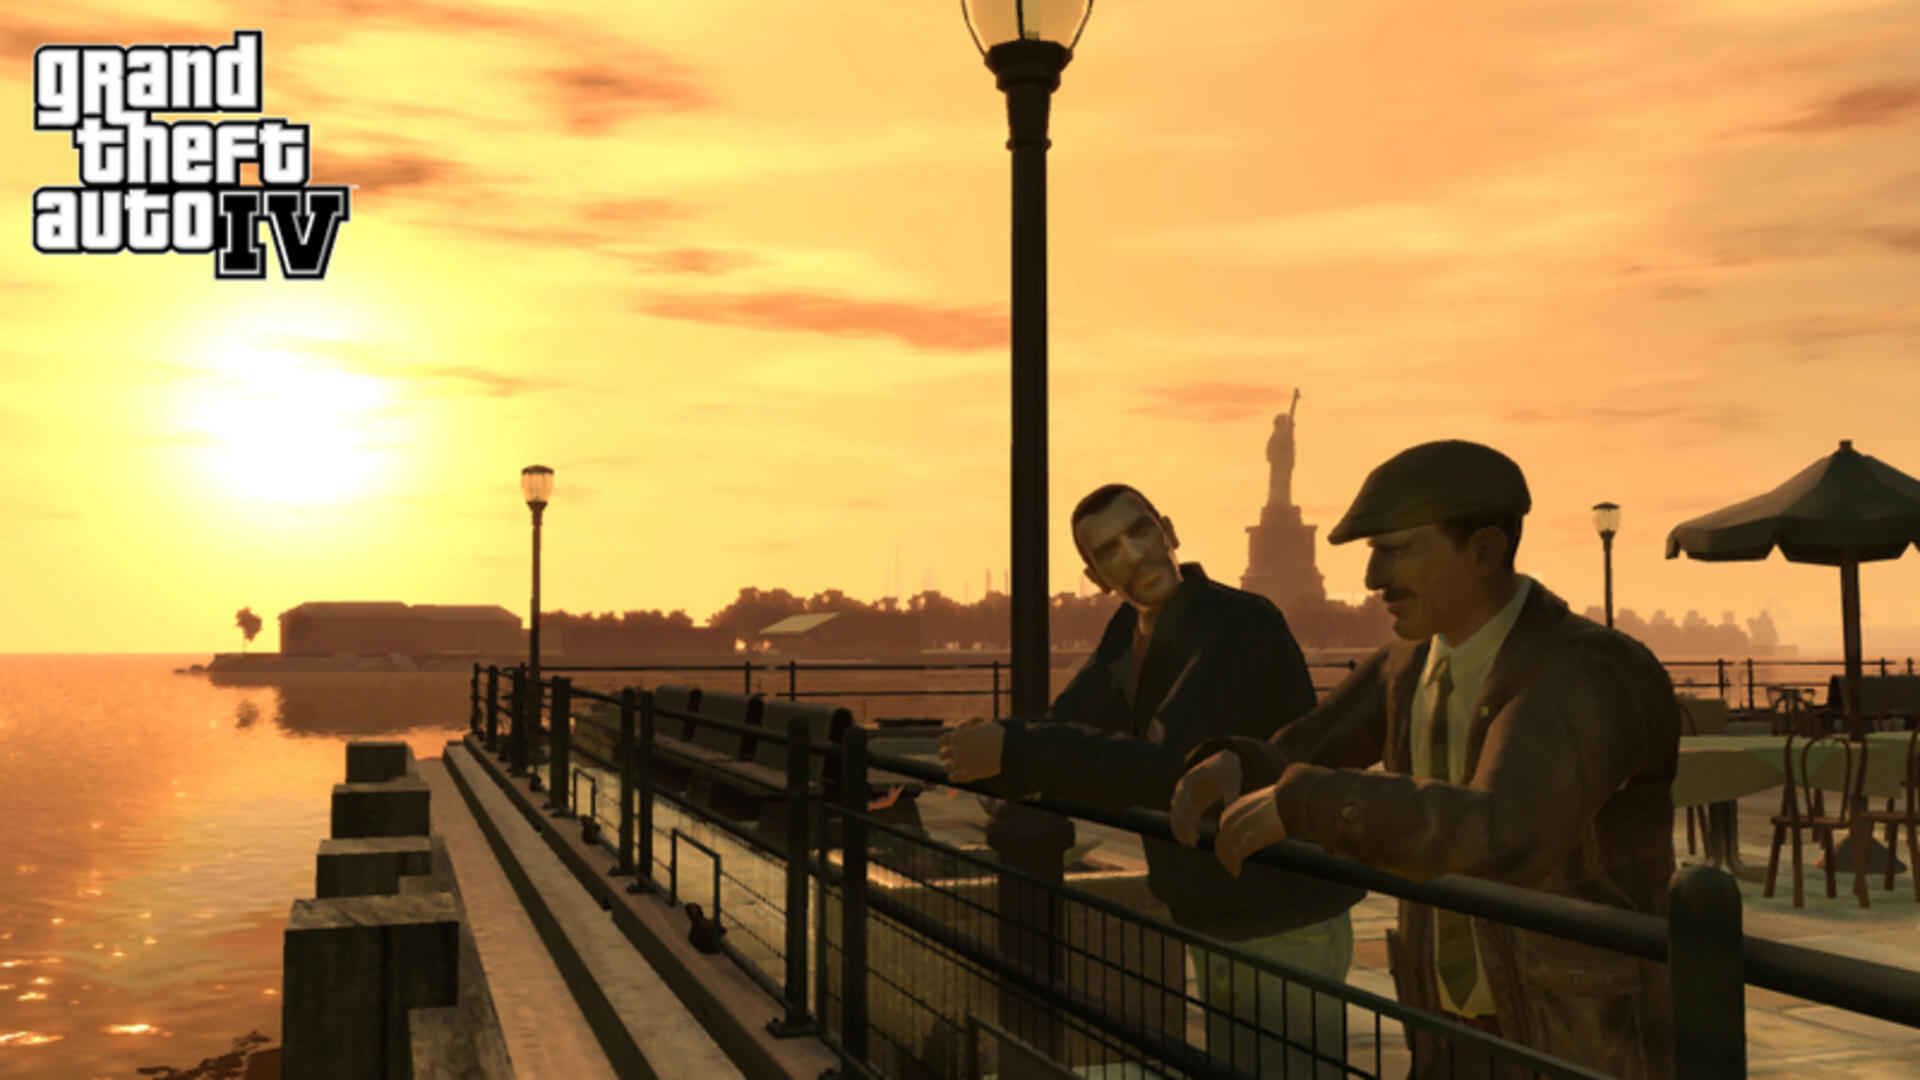 GTA 4 Cheats: Weapons, Armor, Health and More | USgamer